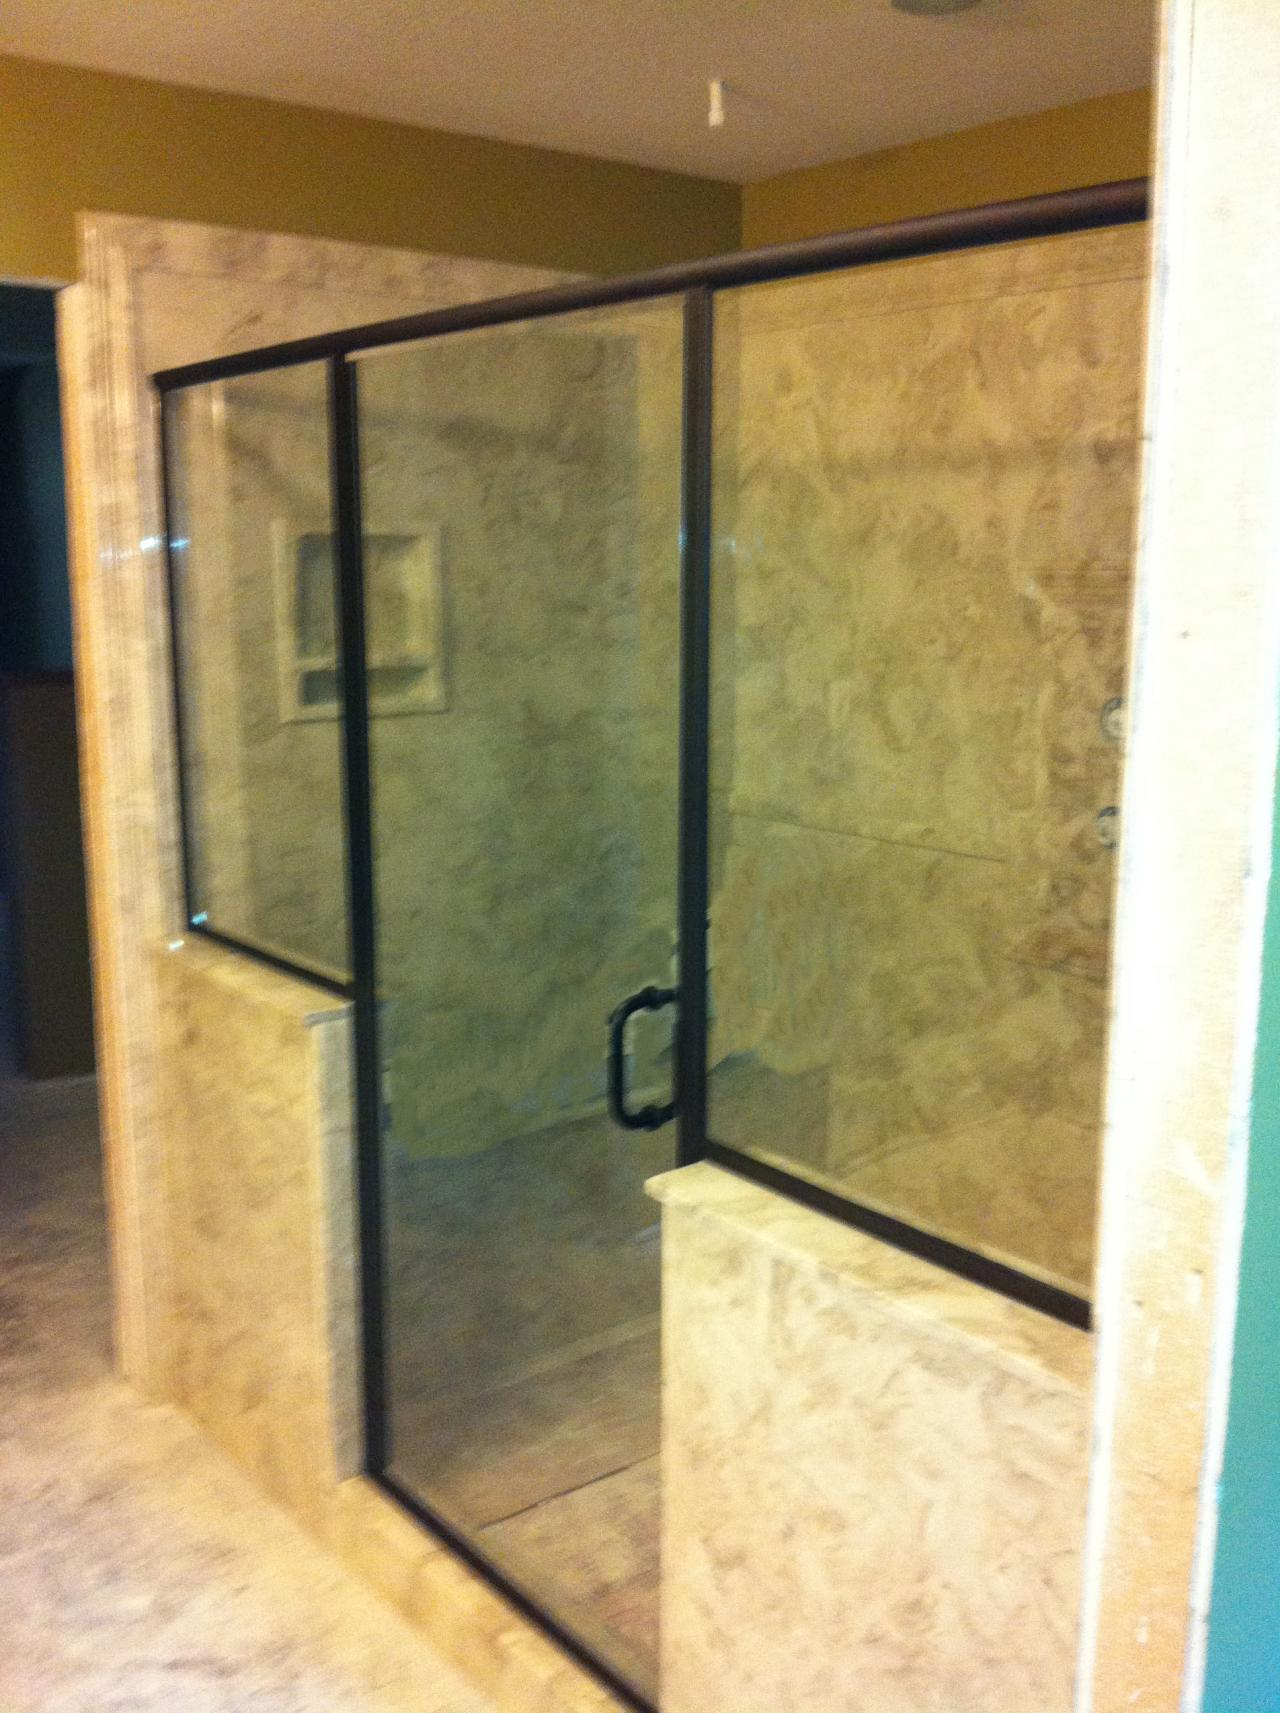 panel large glass doors iphone frameless mikes door enclosure pictures alternative shower staley semi